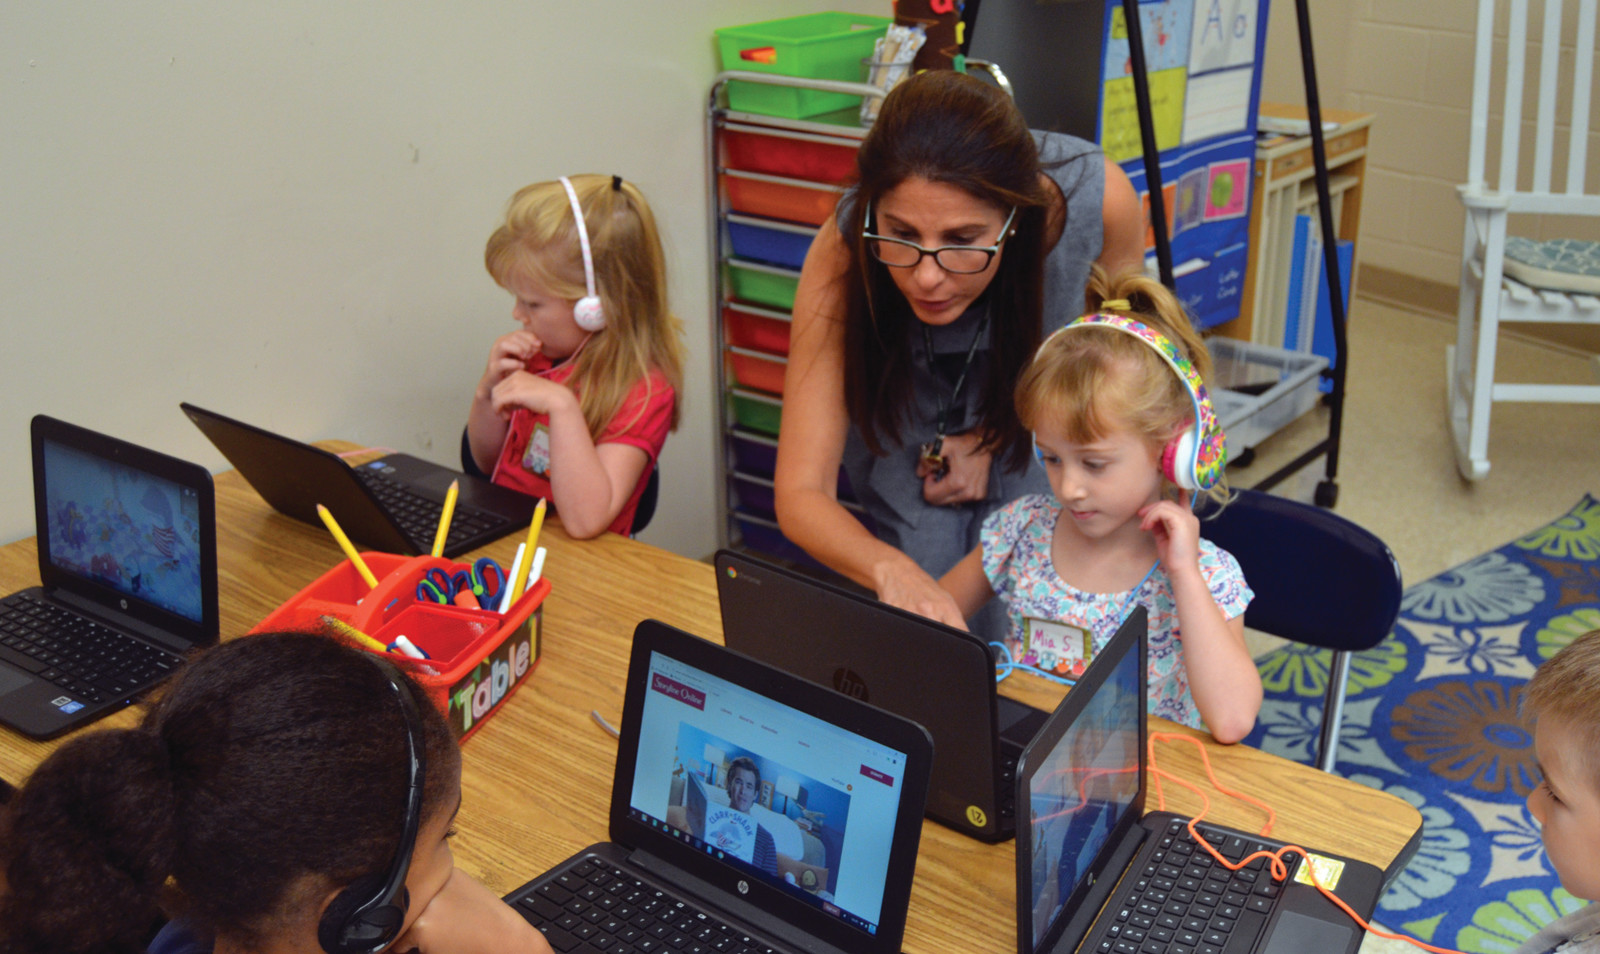 PROUD PRINCIPAL: ECC Principal Julie-anne Zarrella helps a student navigate on her new device Tuesday morning.